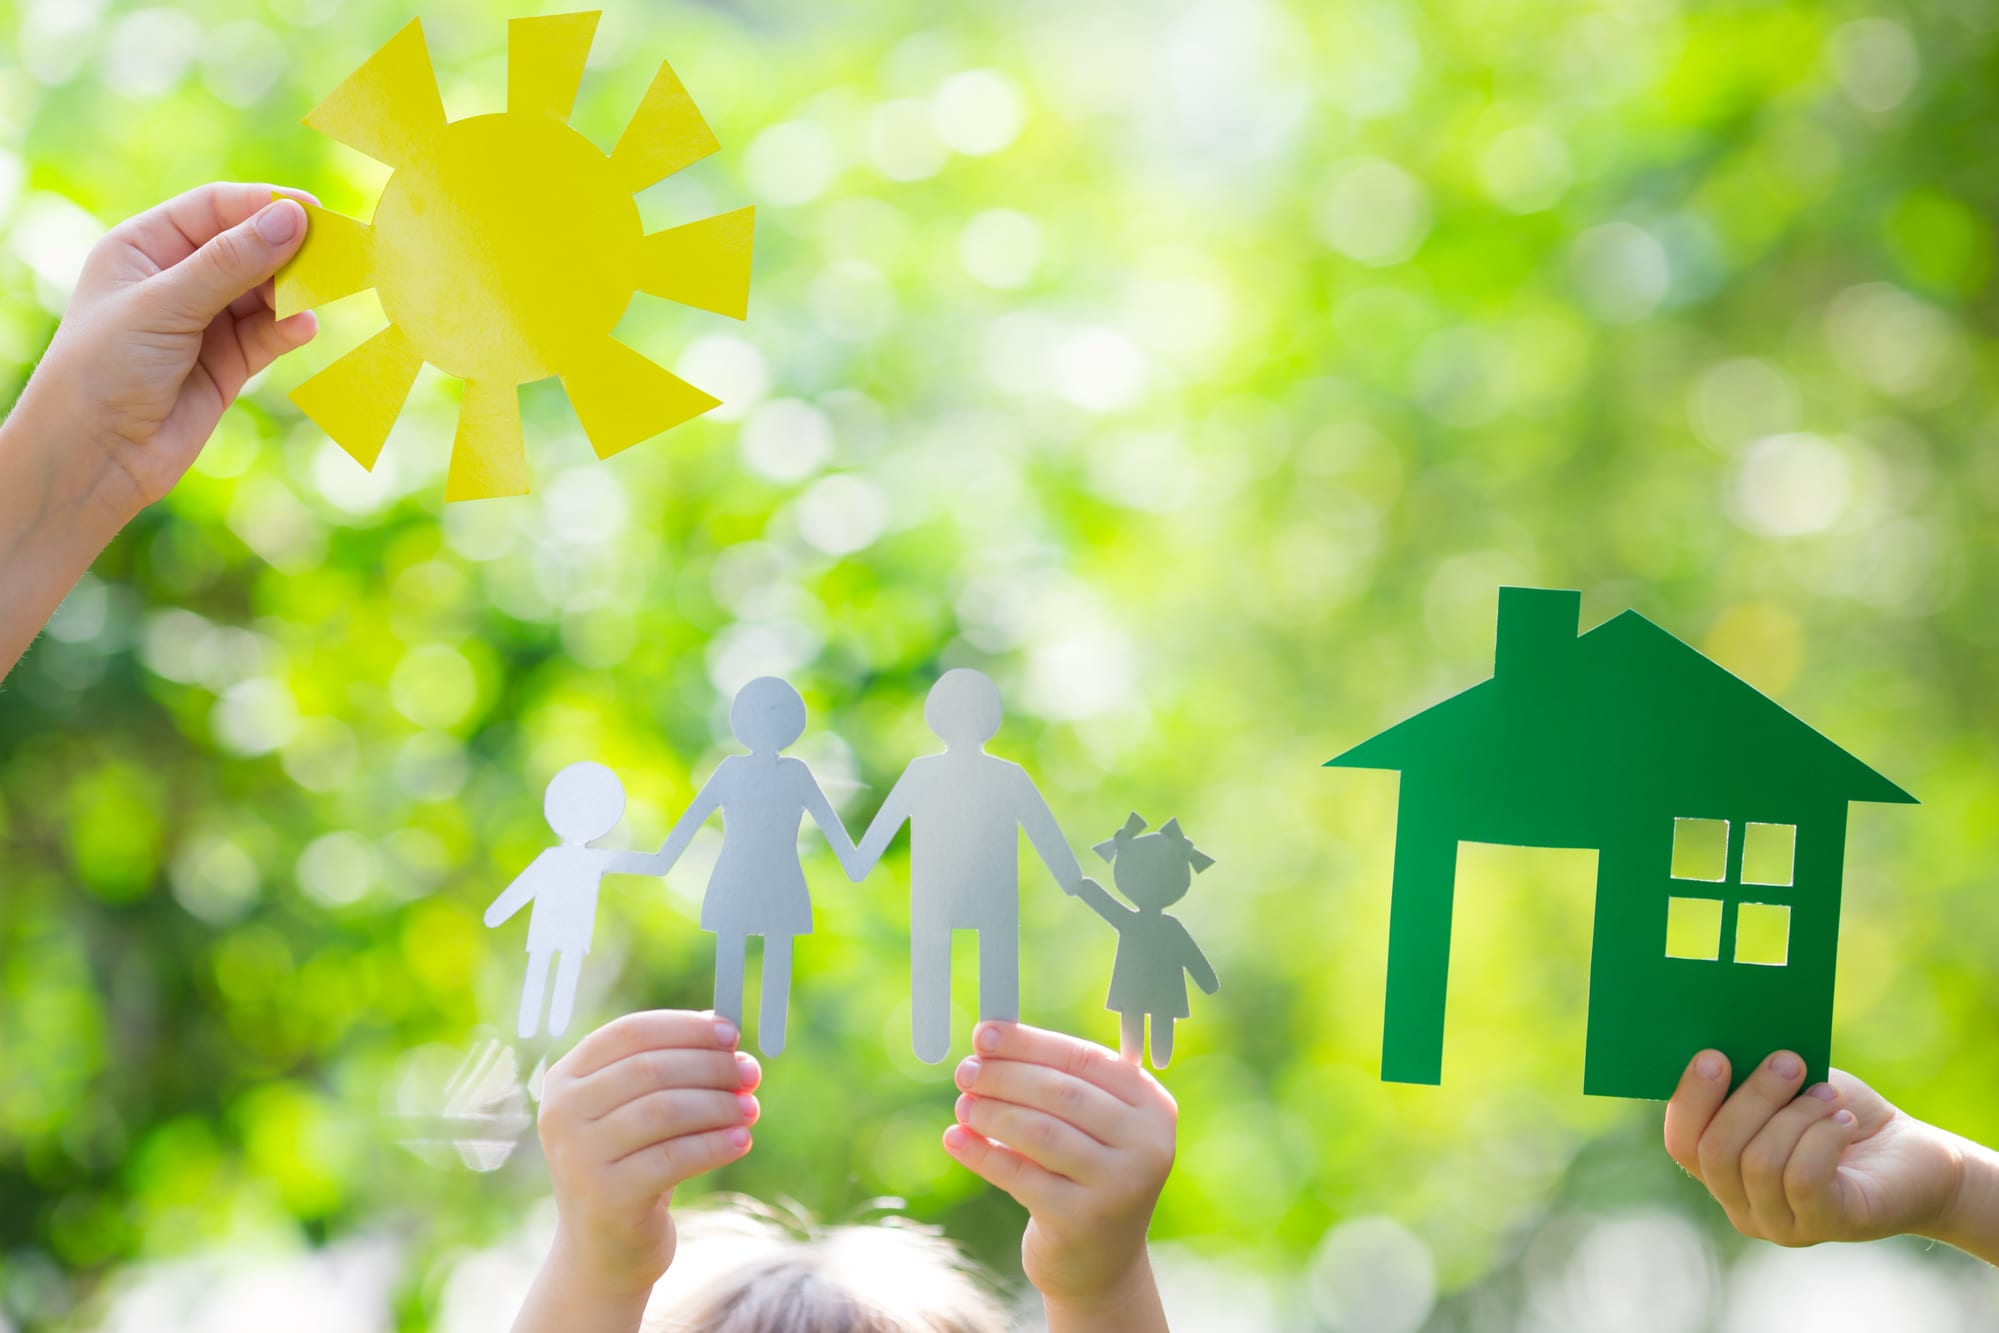 How to make your home more eco friendly #ecofriendly #howtomakeyourhomemoreeofriendly #goinggreen #greenhome